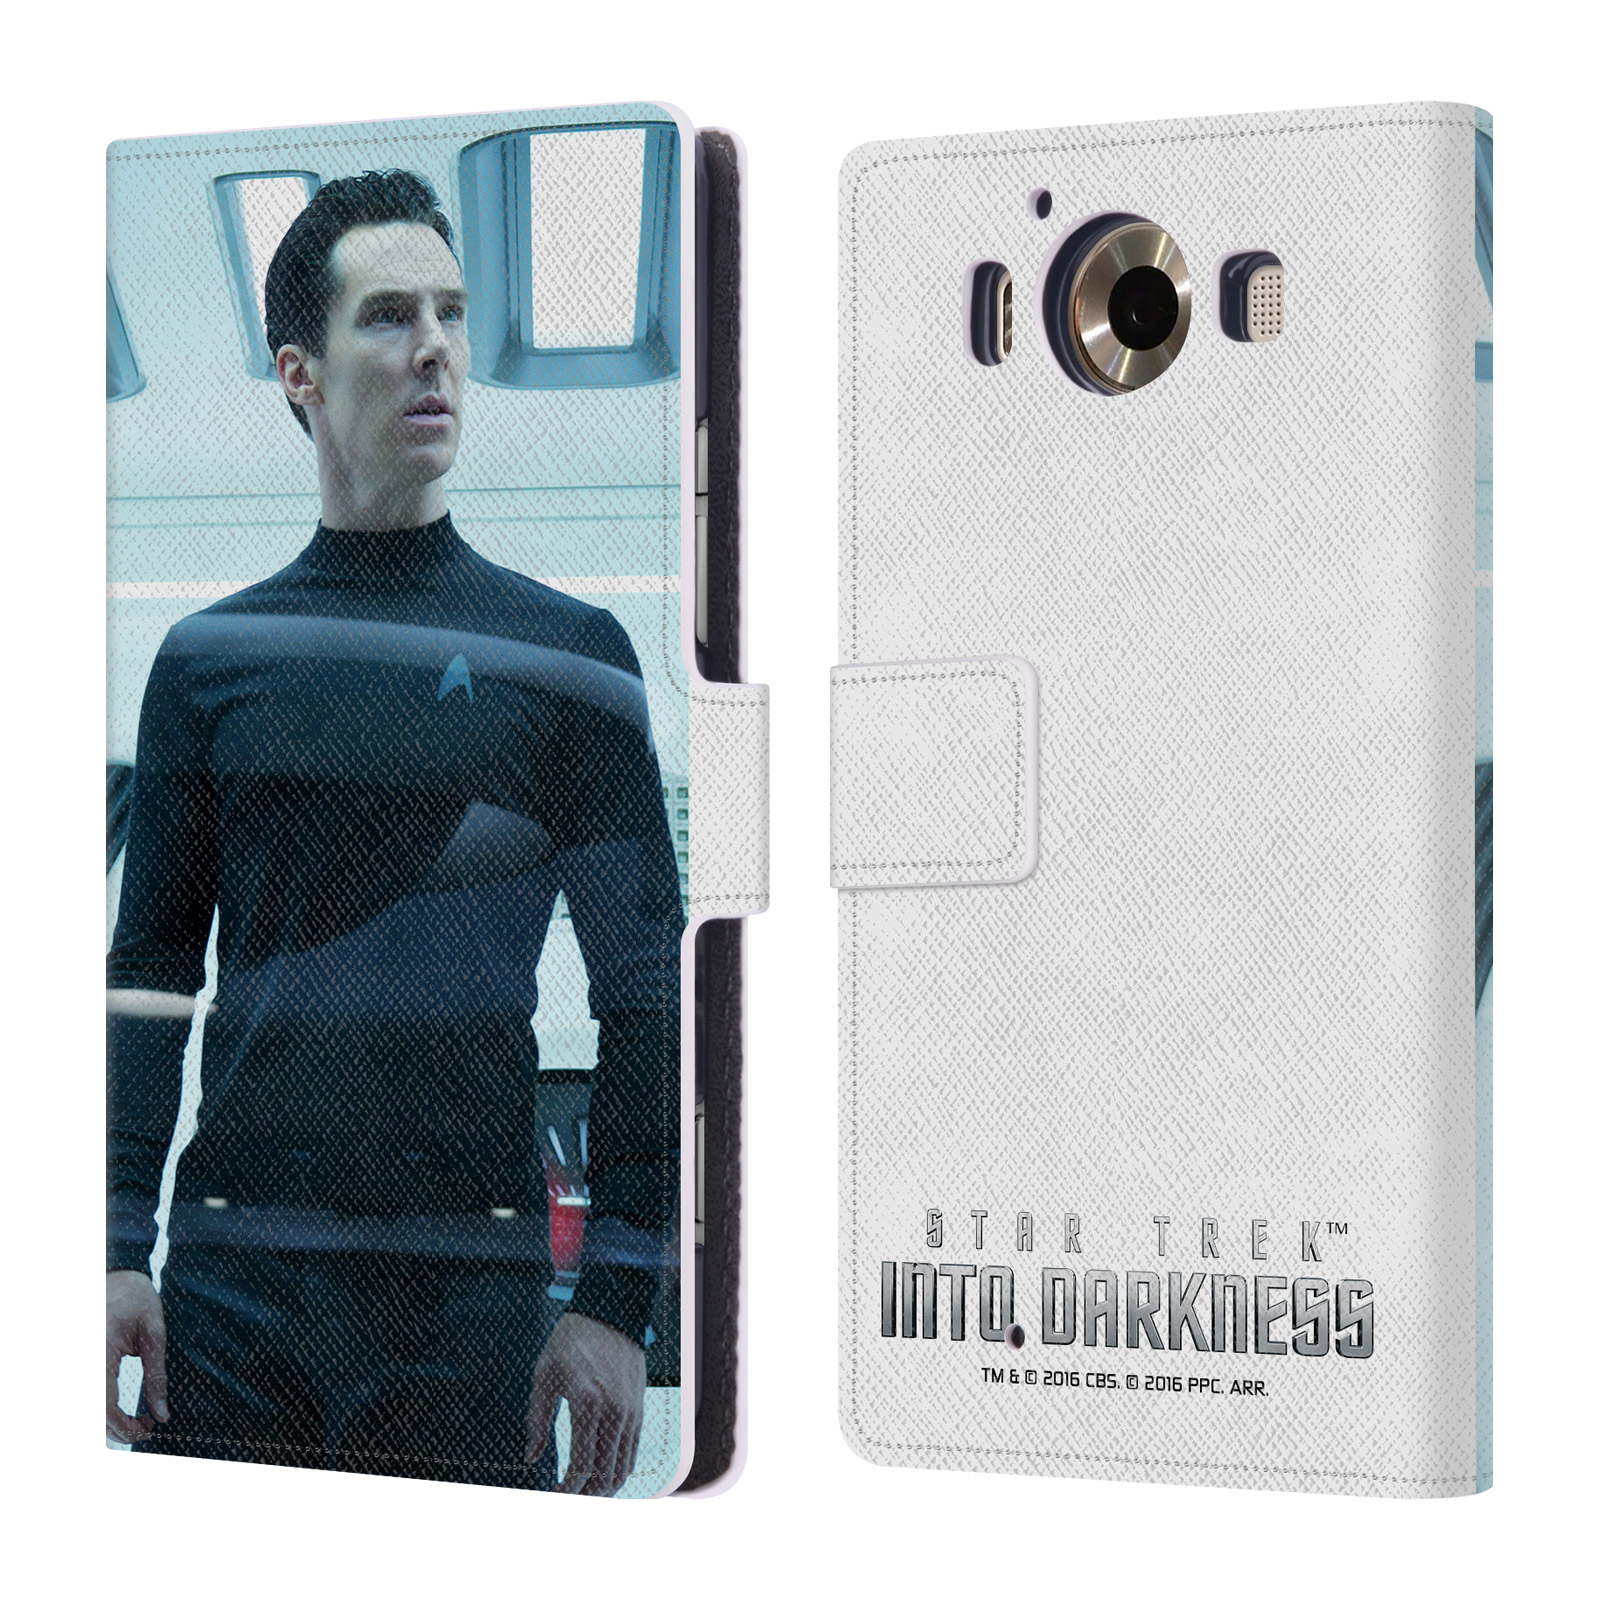 OFFICIAL STAR TREK MOVIE STILLS DARKNESS XII LEATHER BOOK WALLET CASE COVER FOR MICROSOFT NOKIA PHONES